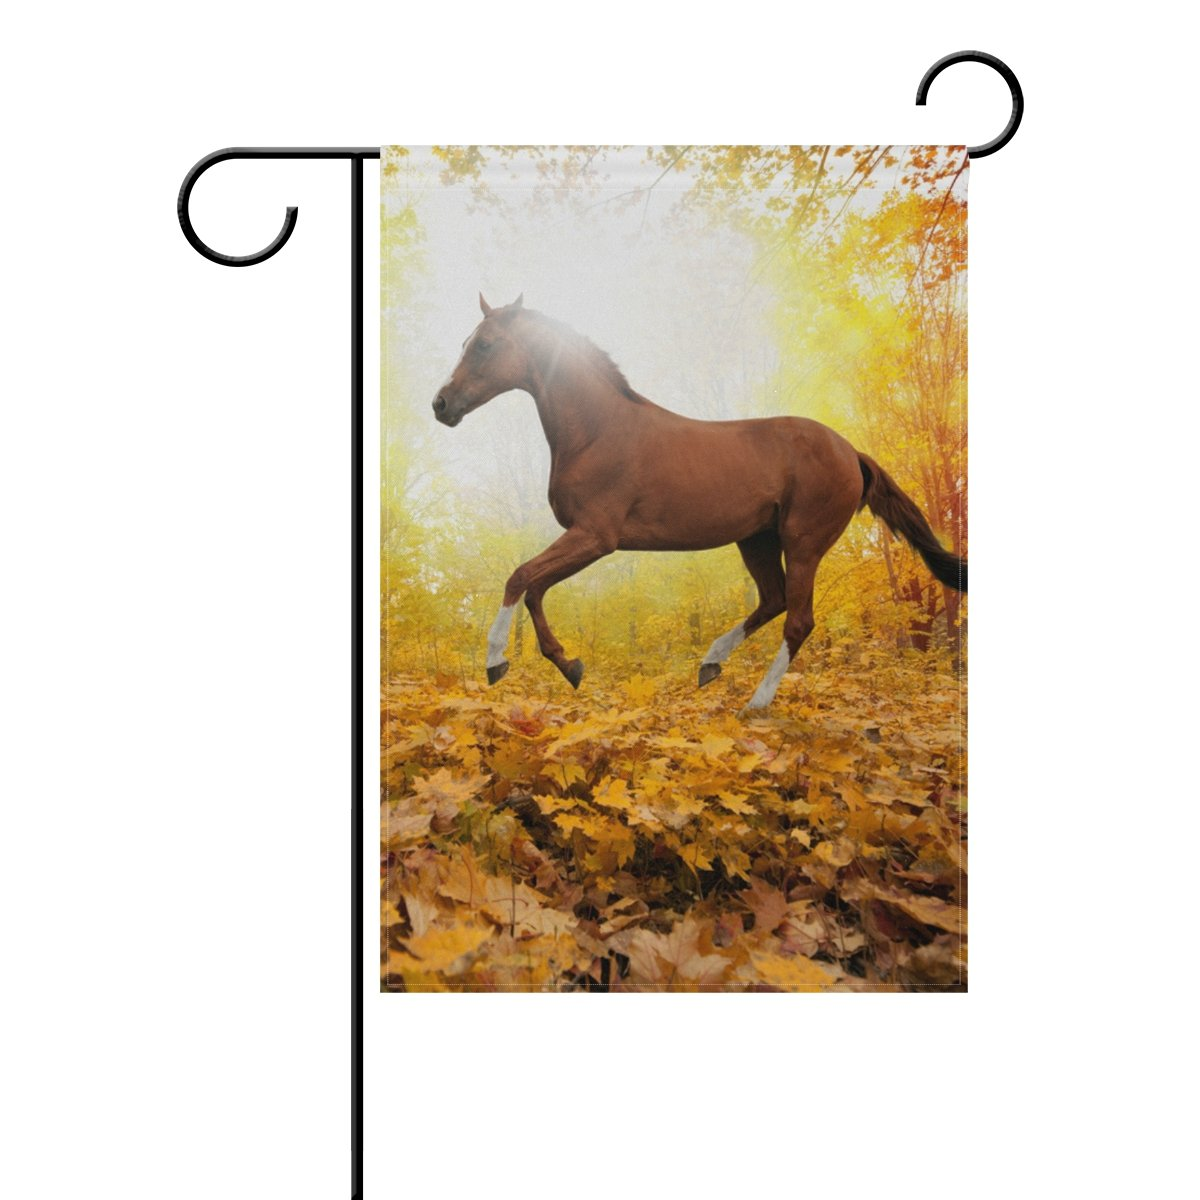 BlueViper Red Horse Running The Maple Forest Garden Flag Banner 12 x 18 Inch Decorative Garden Flag for Outdoor Lawn and Garden Home Décor Double-Sided